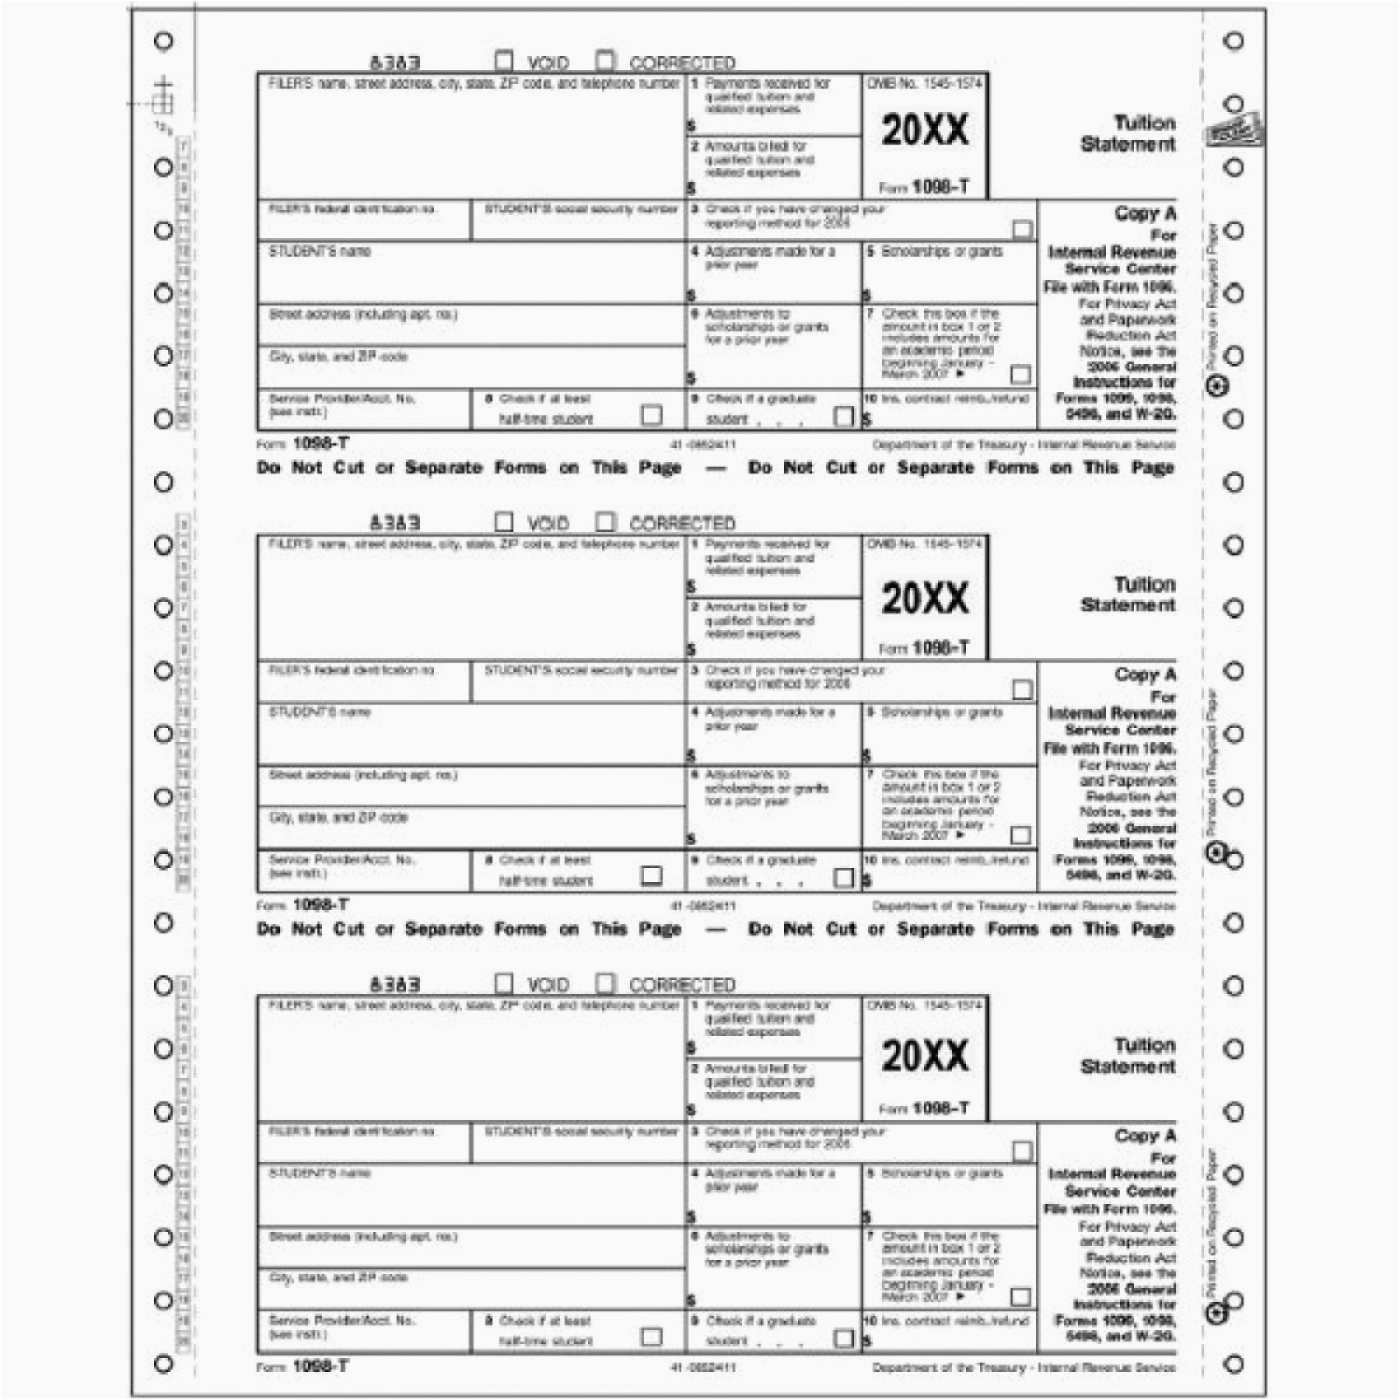 Irs Forms 1098 And 1099